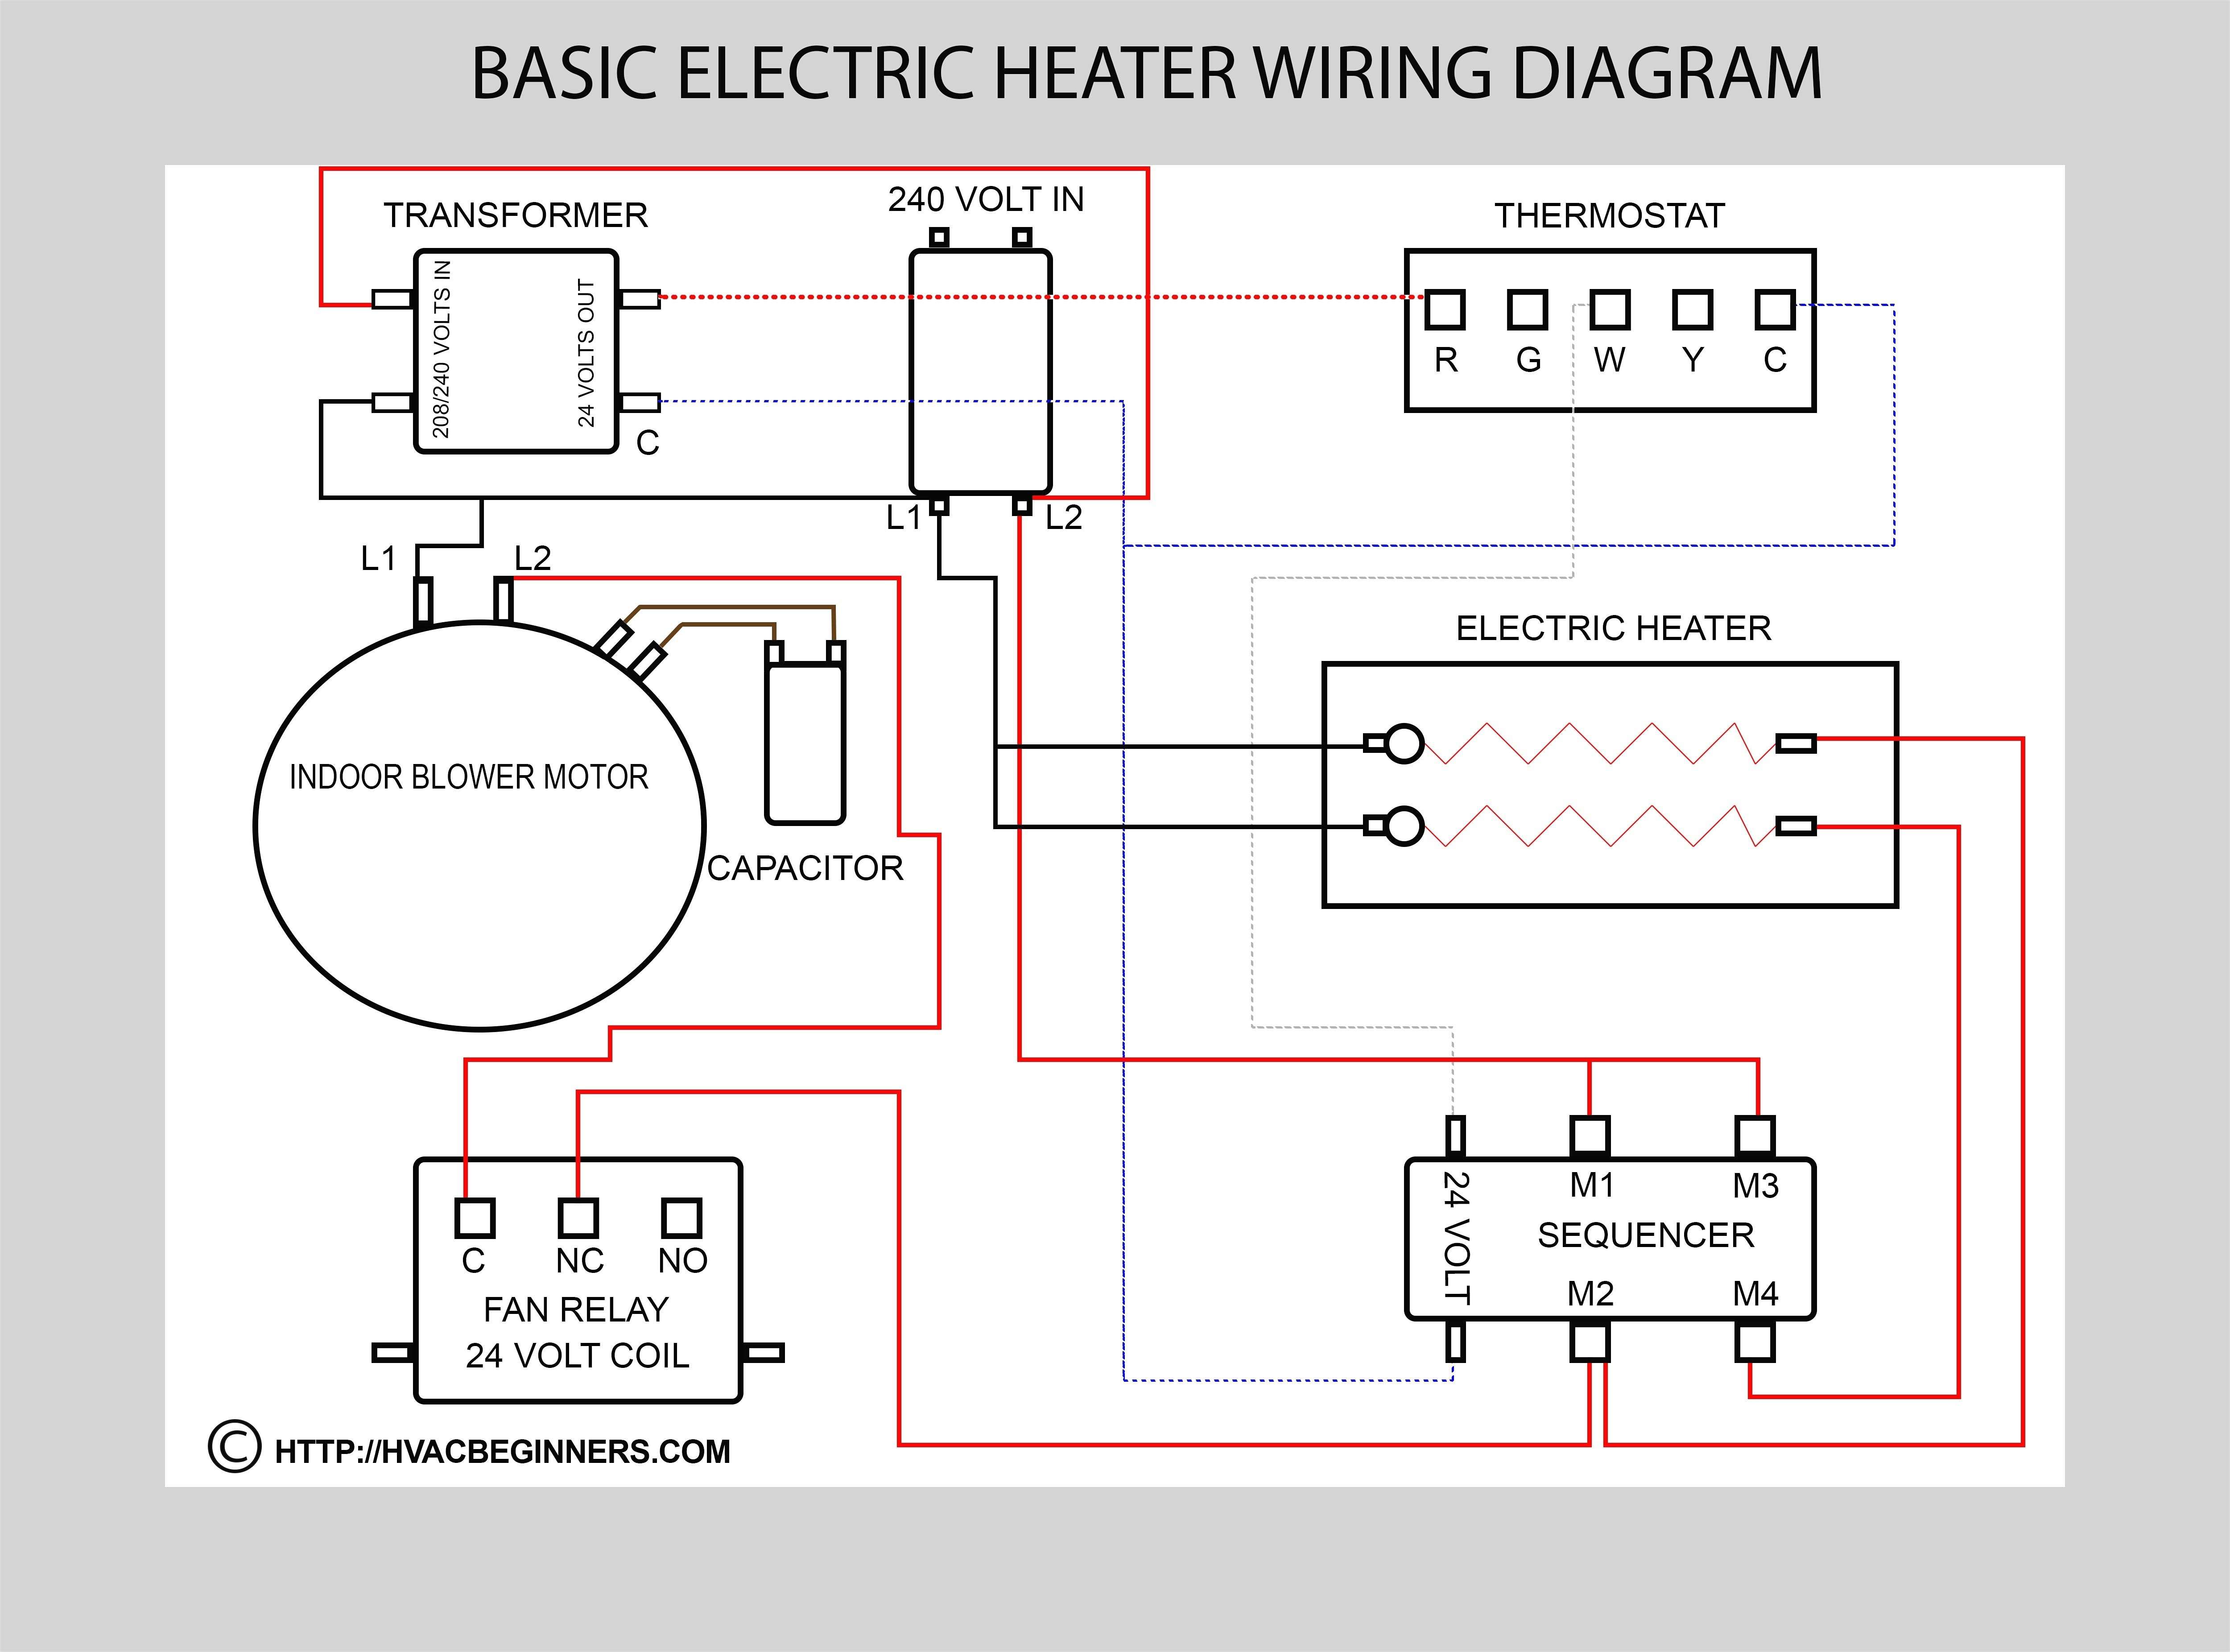 Coleman Mobile Home Gas Furnace Wiring Diagram | Free ...